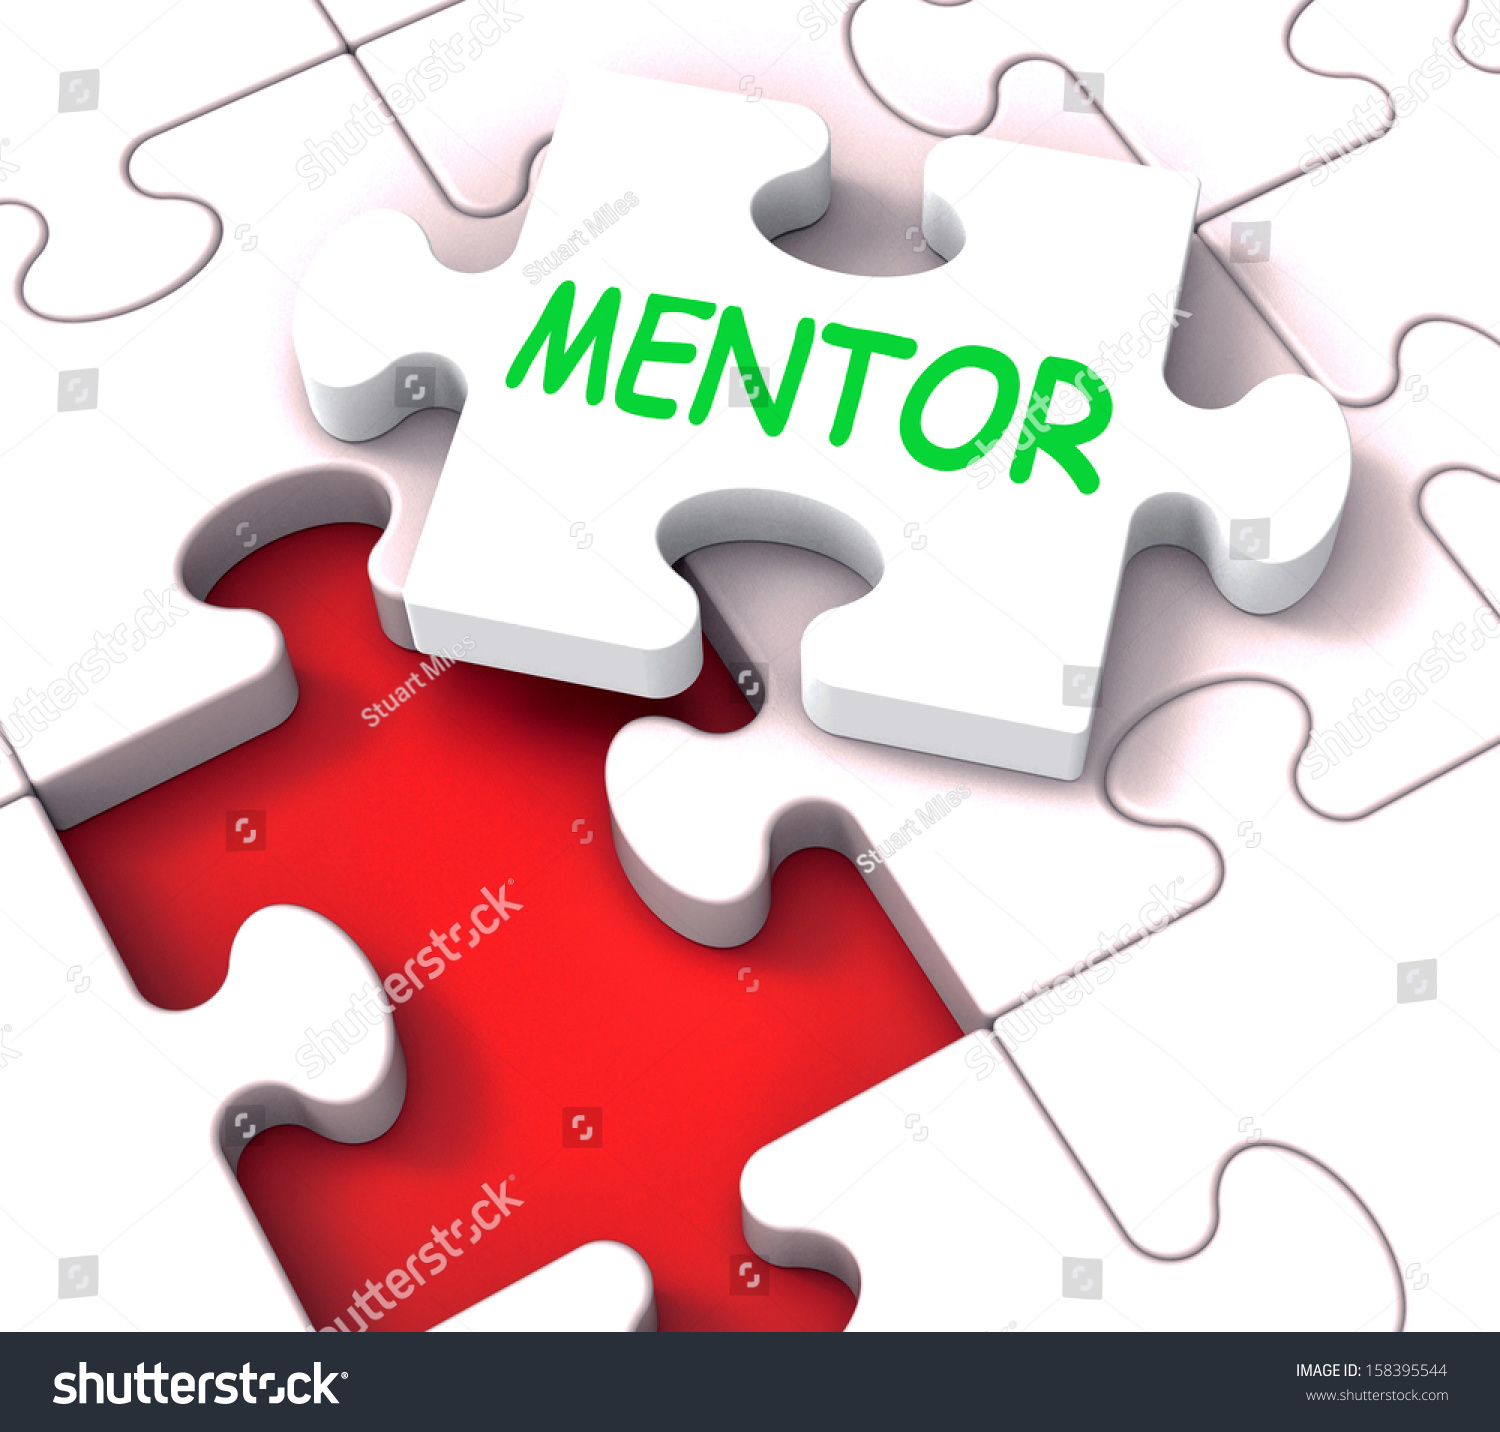 Mentor puzzle showing advice mentoring mentorship stock for Horticulturist crossword clue